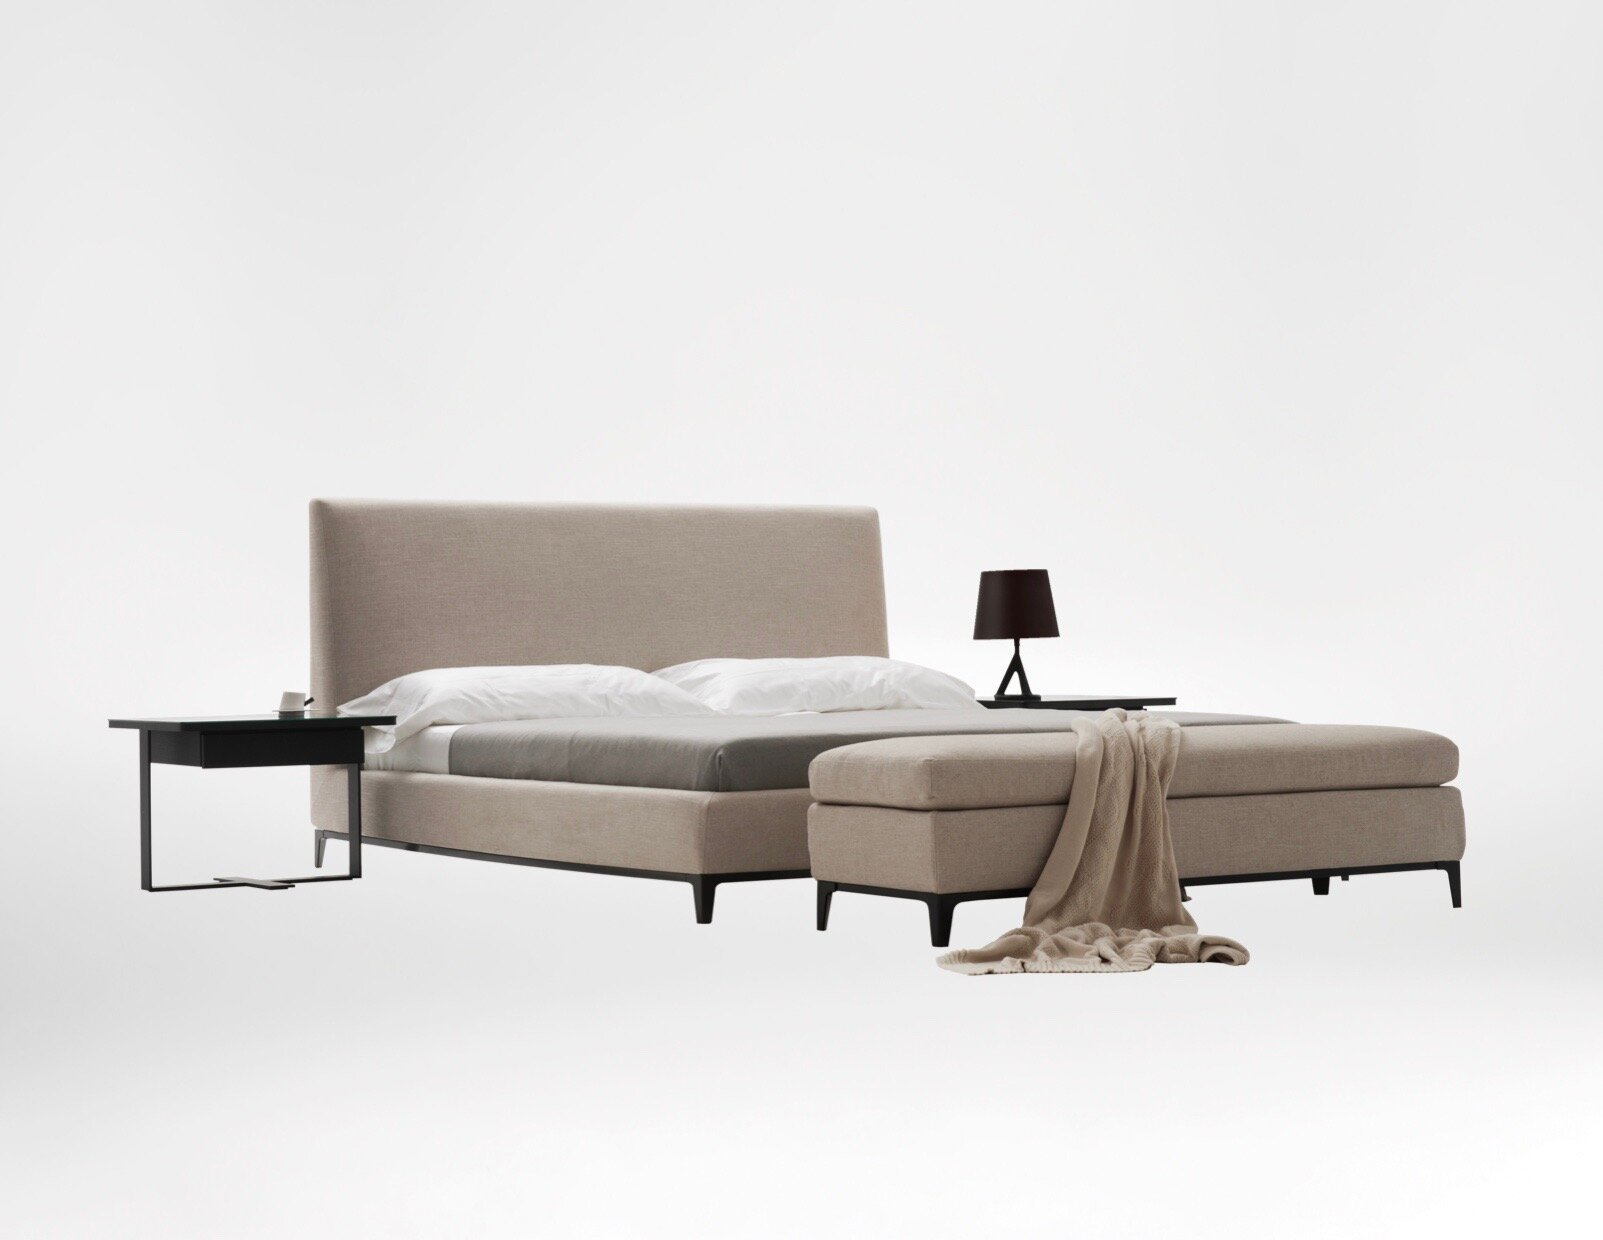 Crescent bed - Formal yet supremely comfortable, the Crescent bed is designed in impeccable taste.